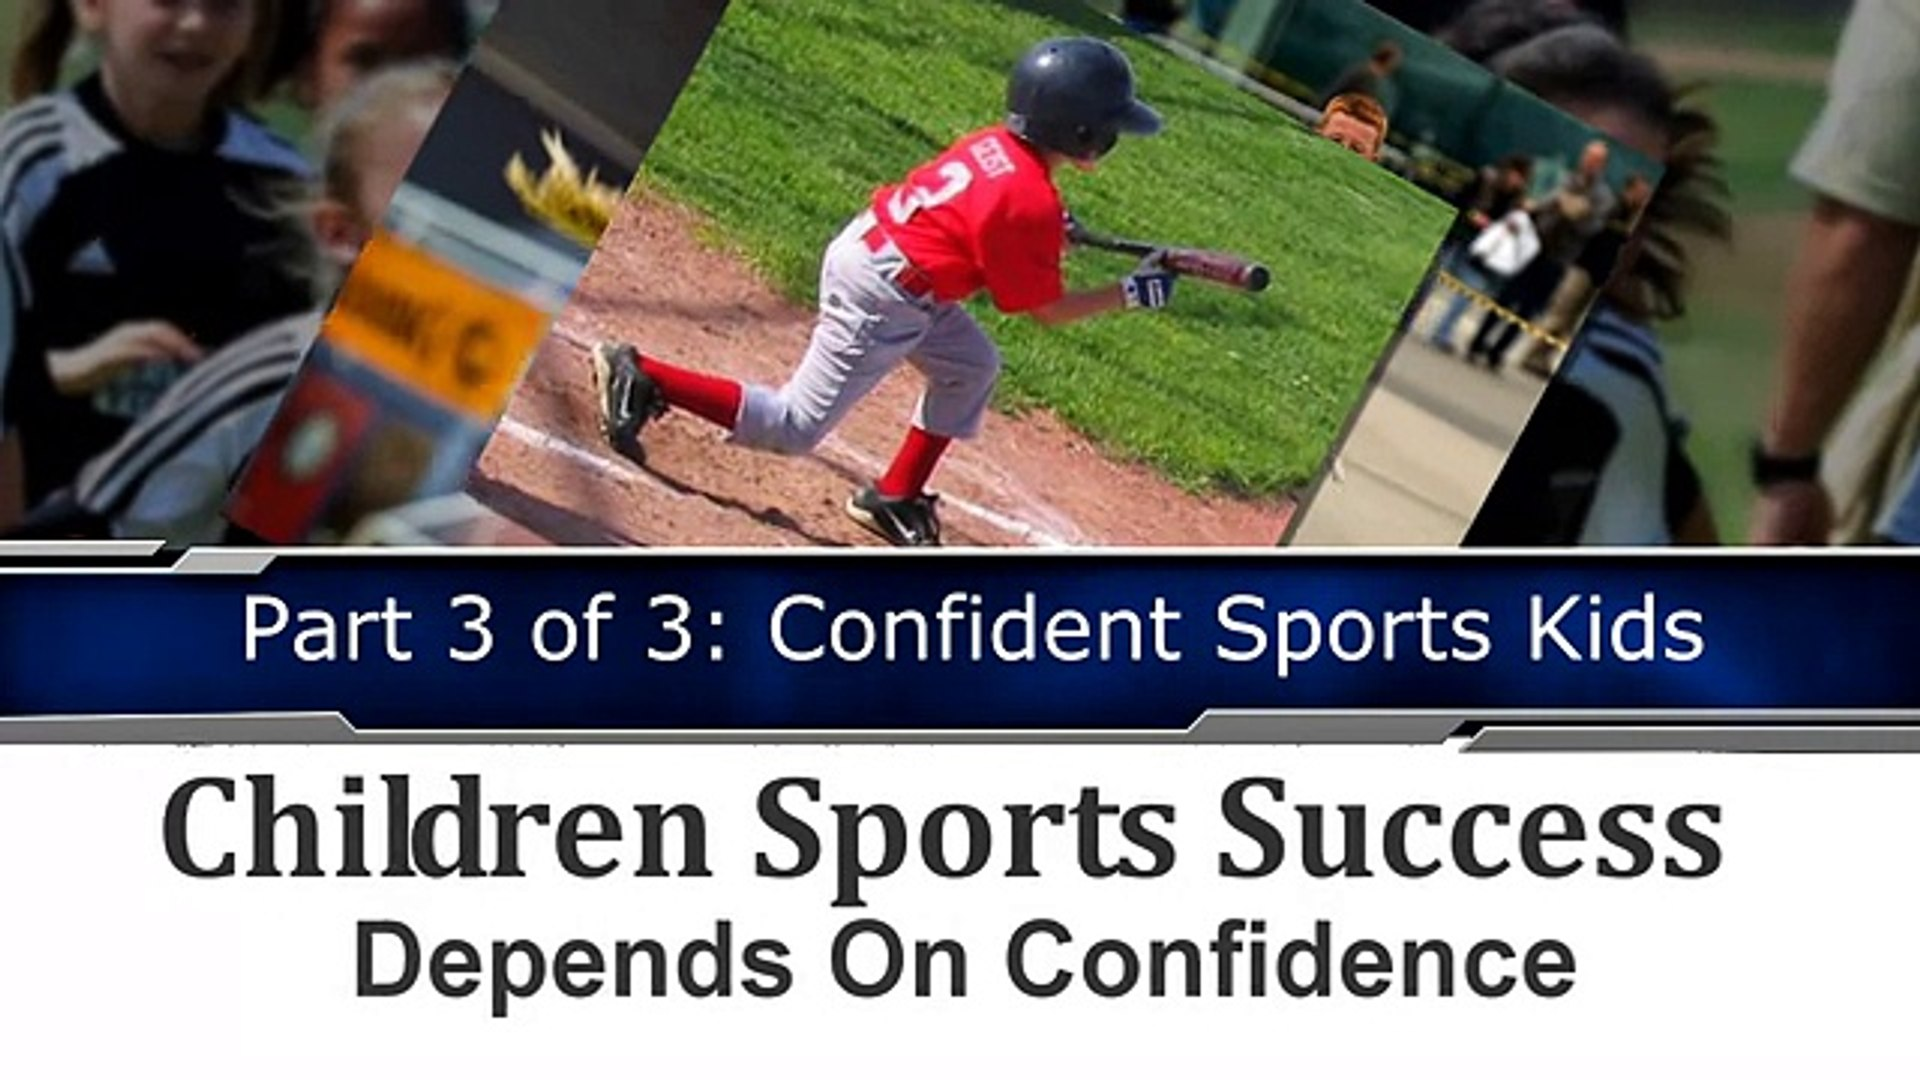 National Youth Sports Program To Achieve Success In Youth Sports- Part 3